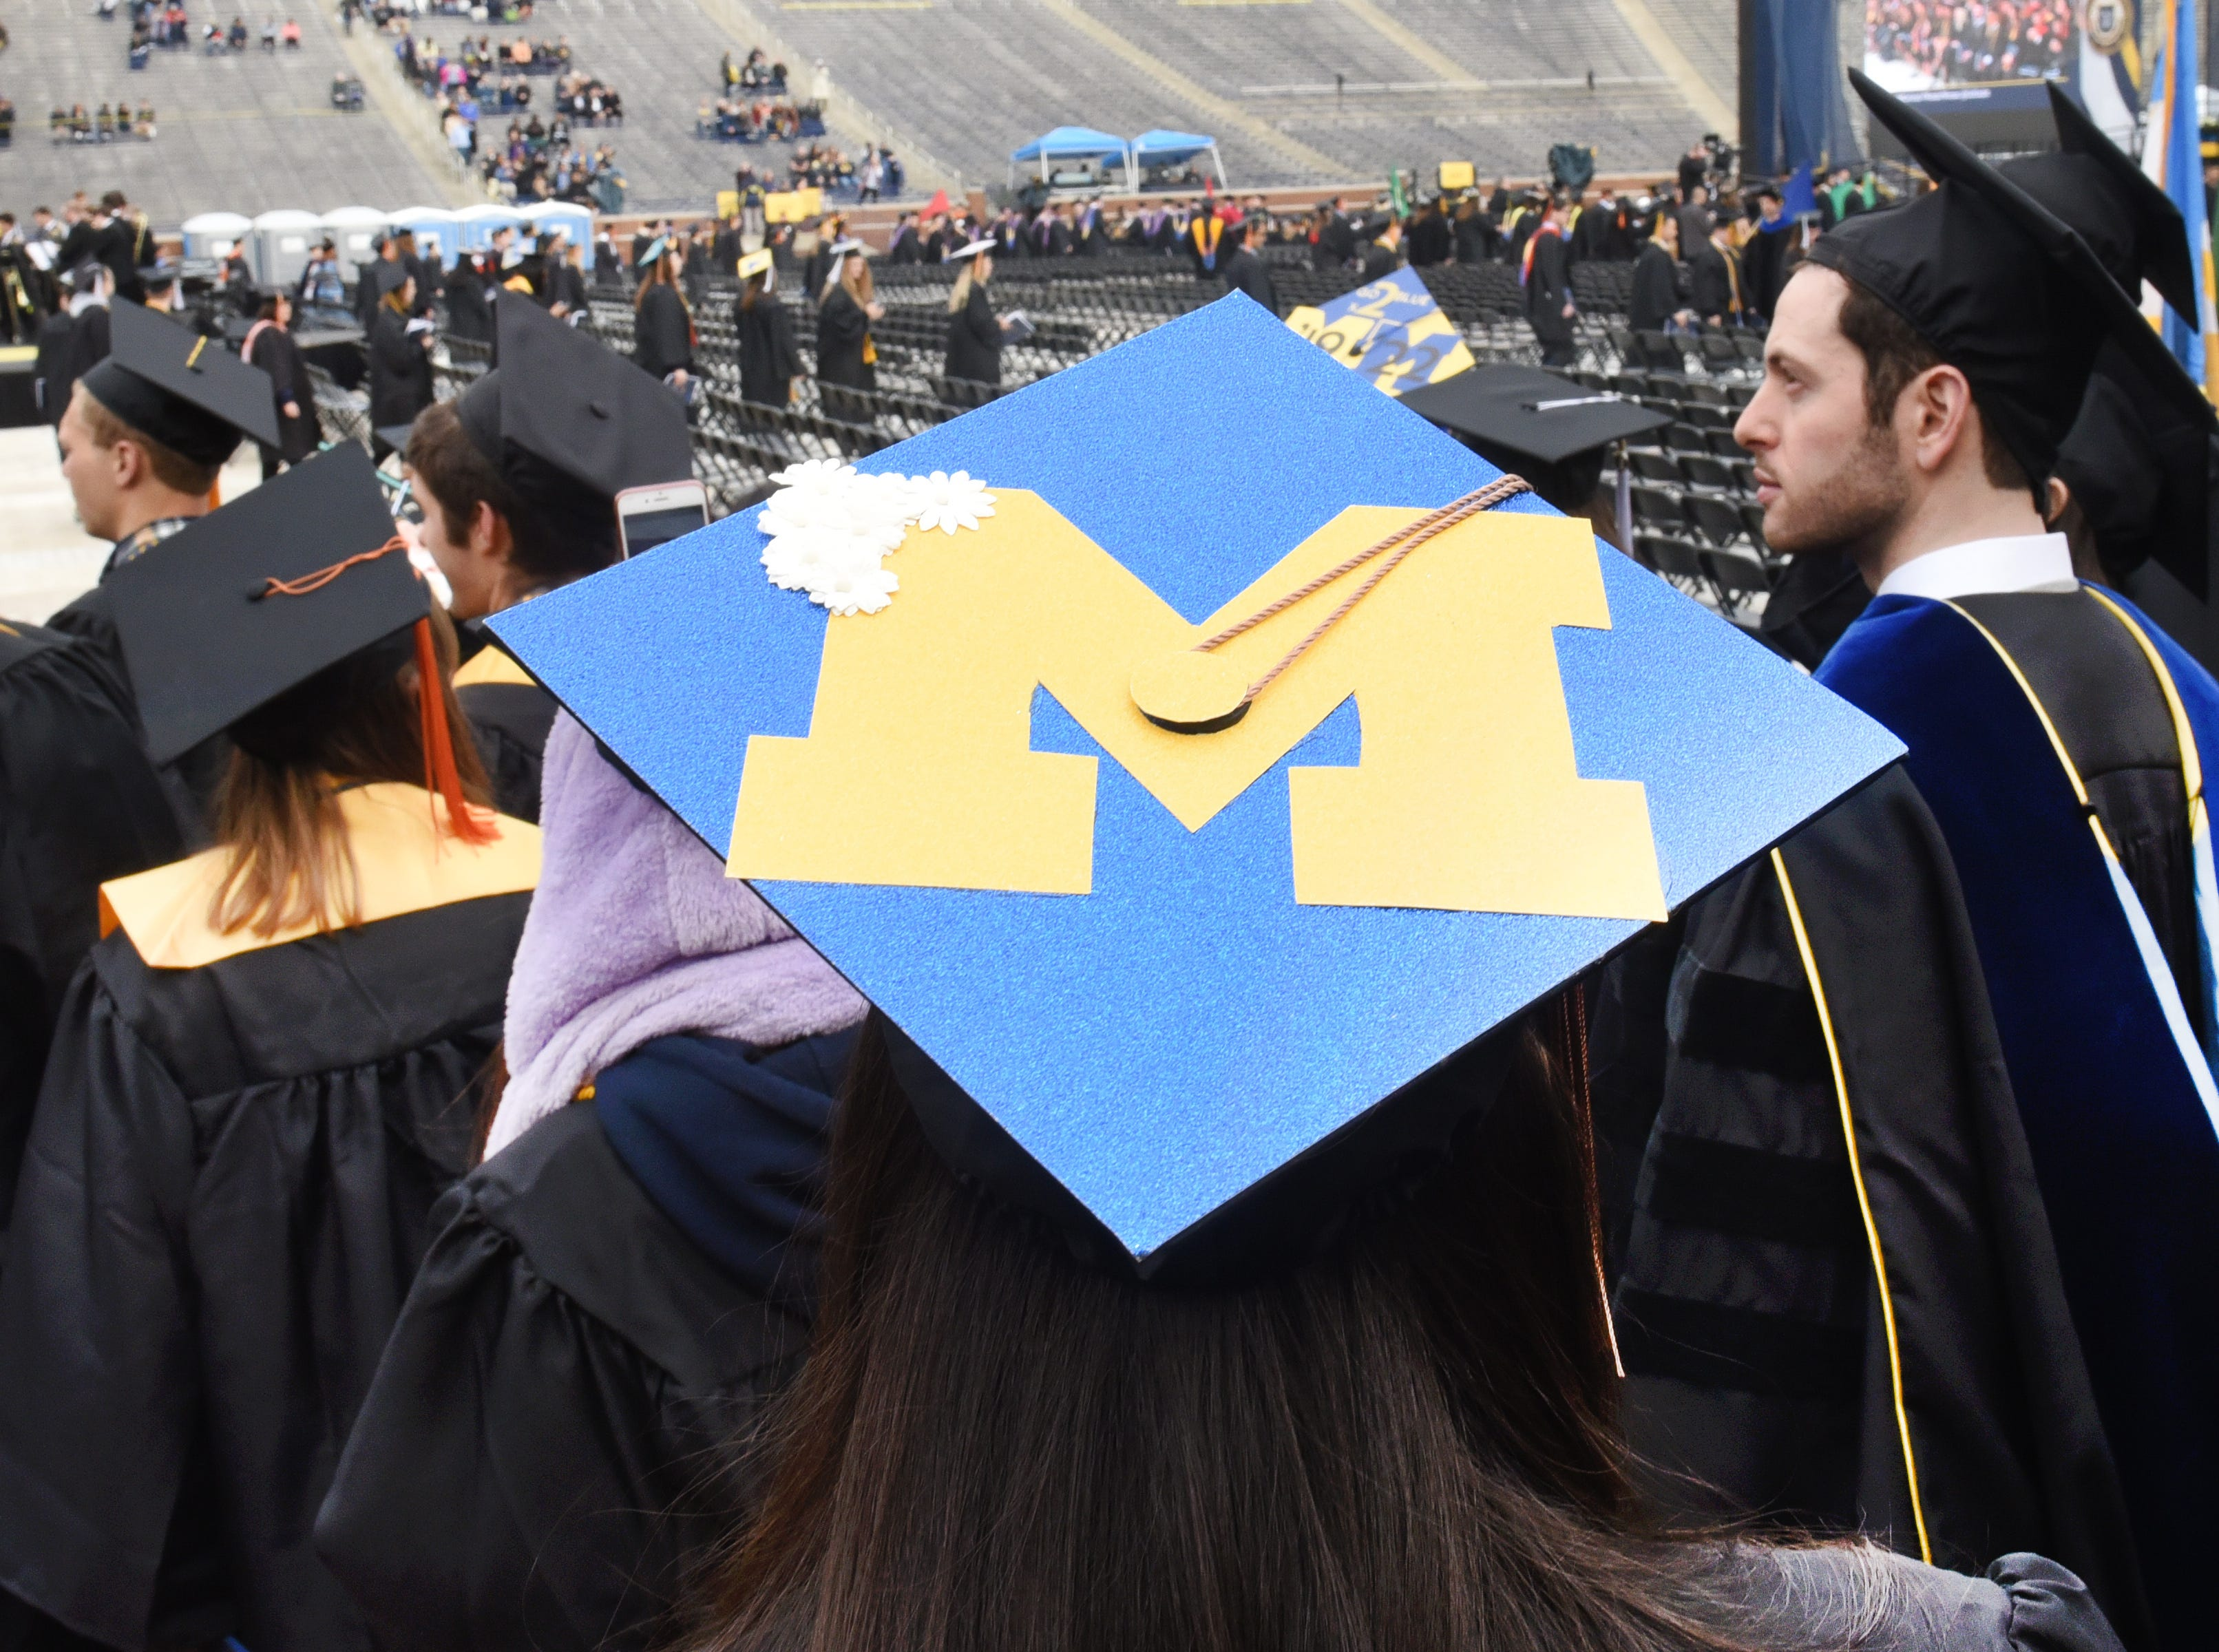 University of Michigan students decorated their mortarboard's for commencement exercises.